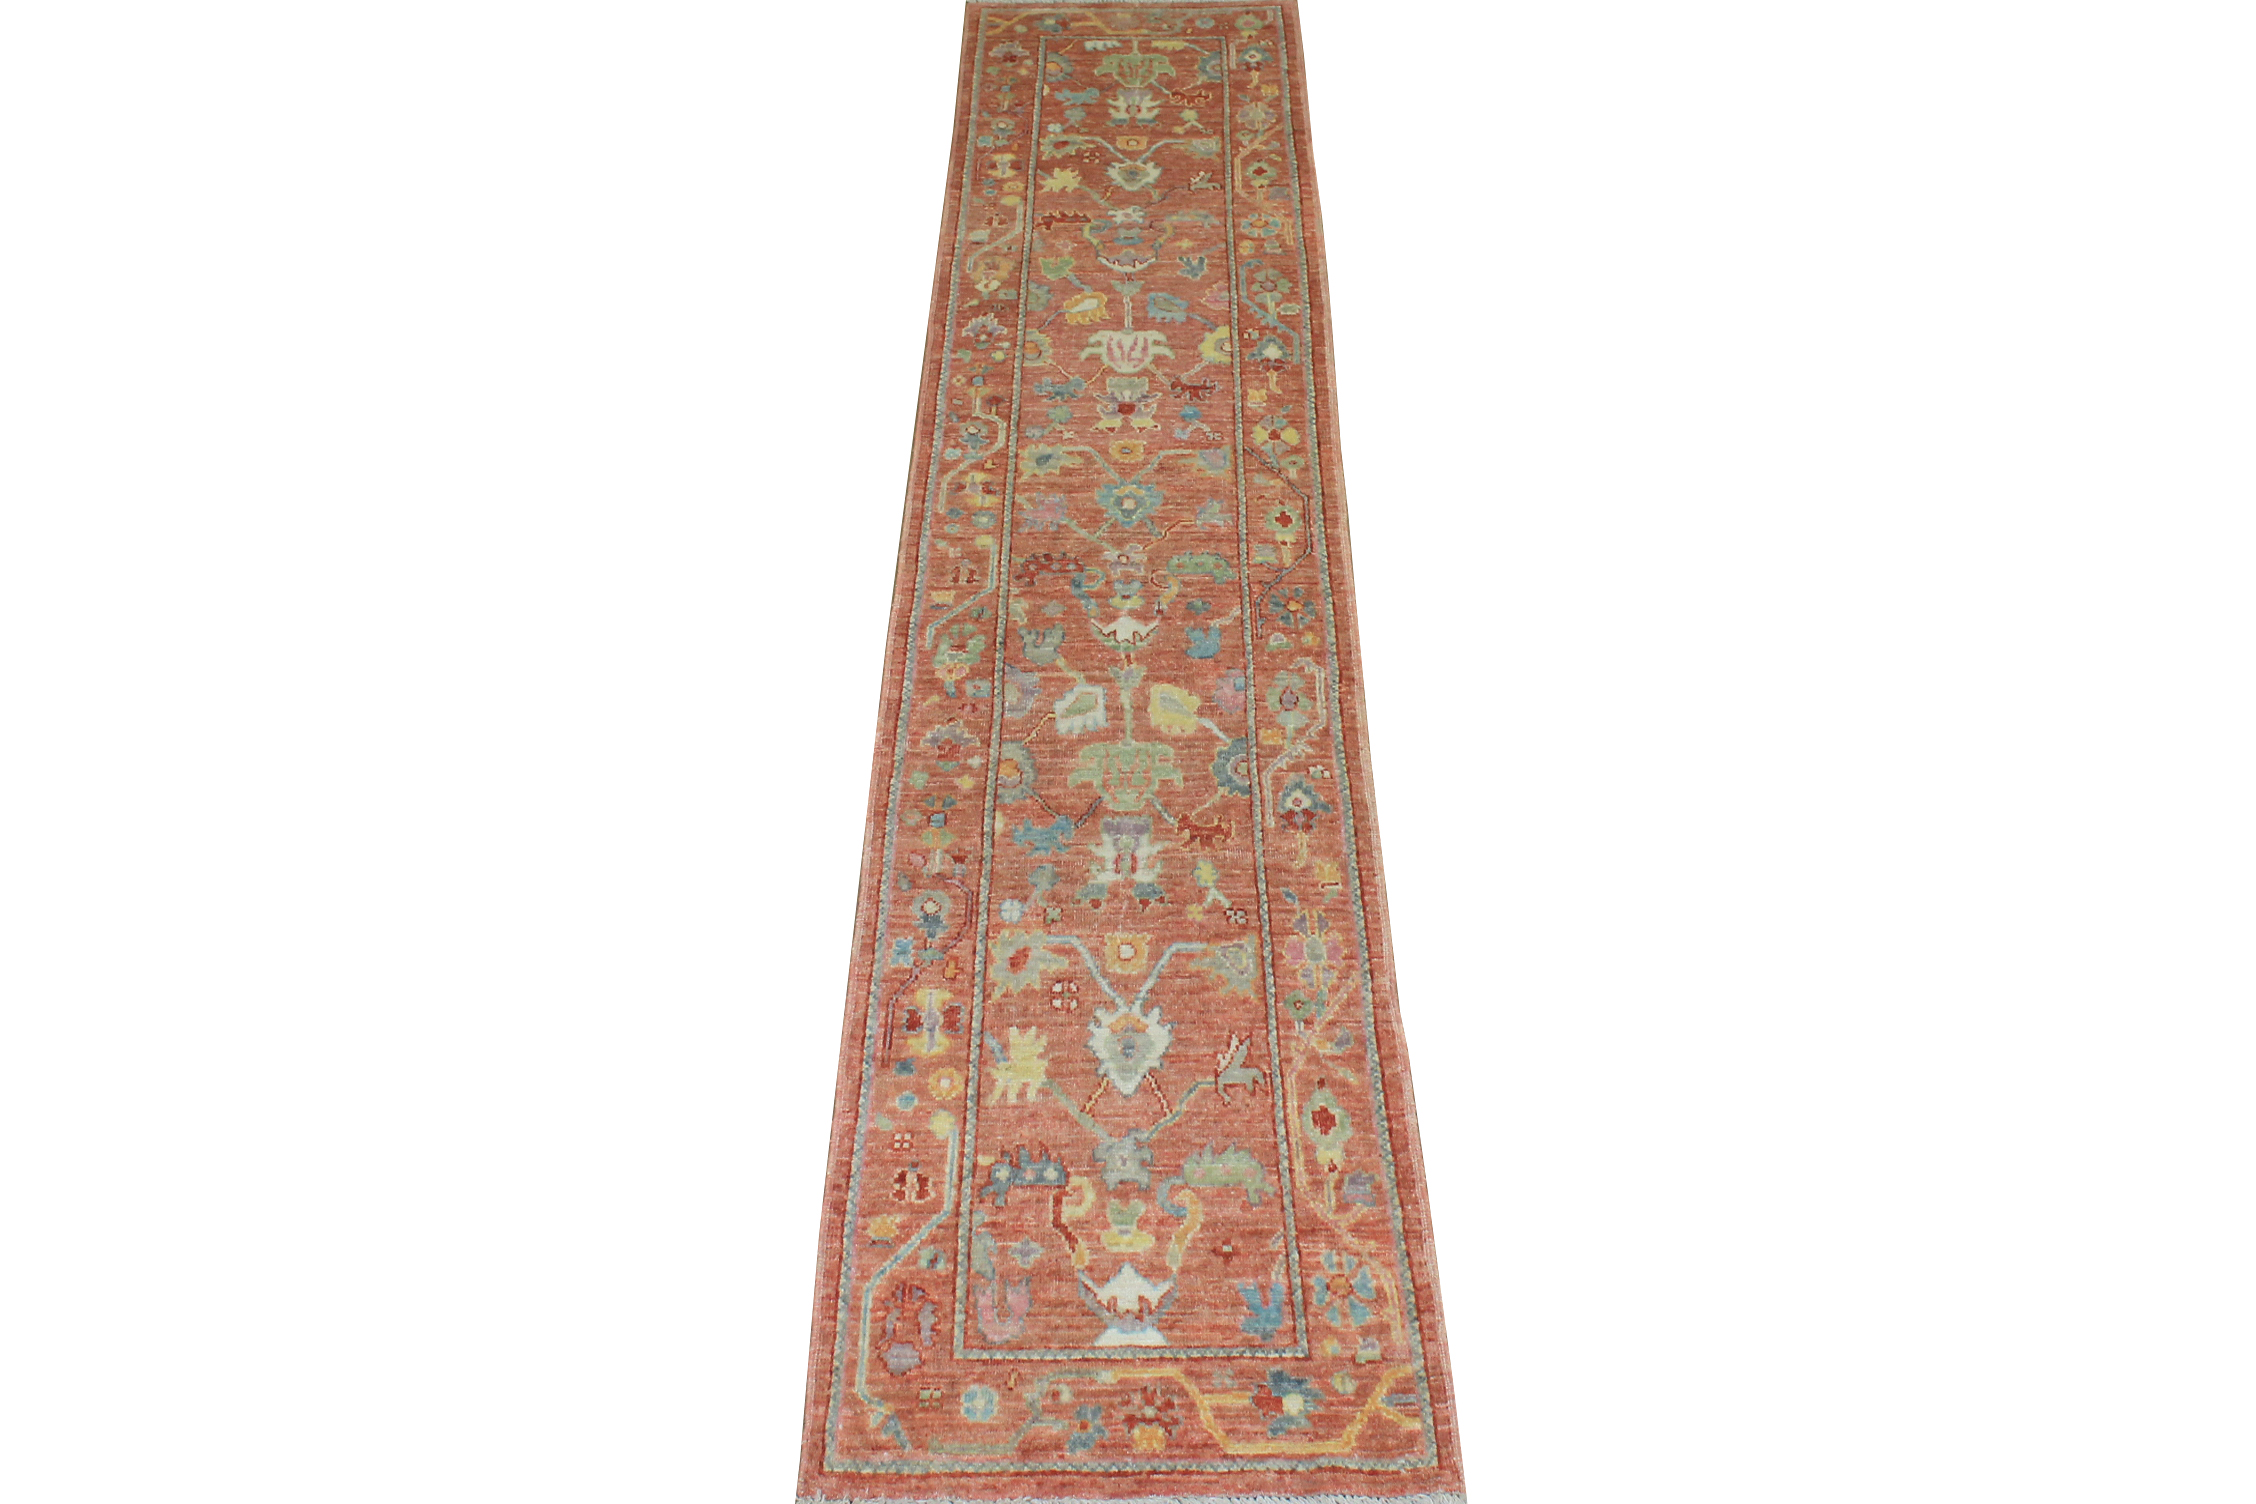 12 ft. Runner Oushak Hand Knotted Wool Area Rug - MR024357